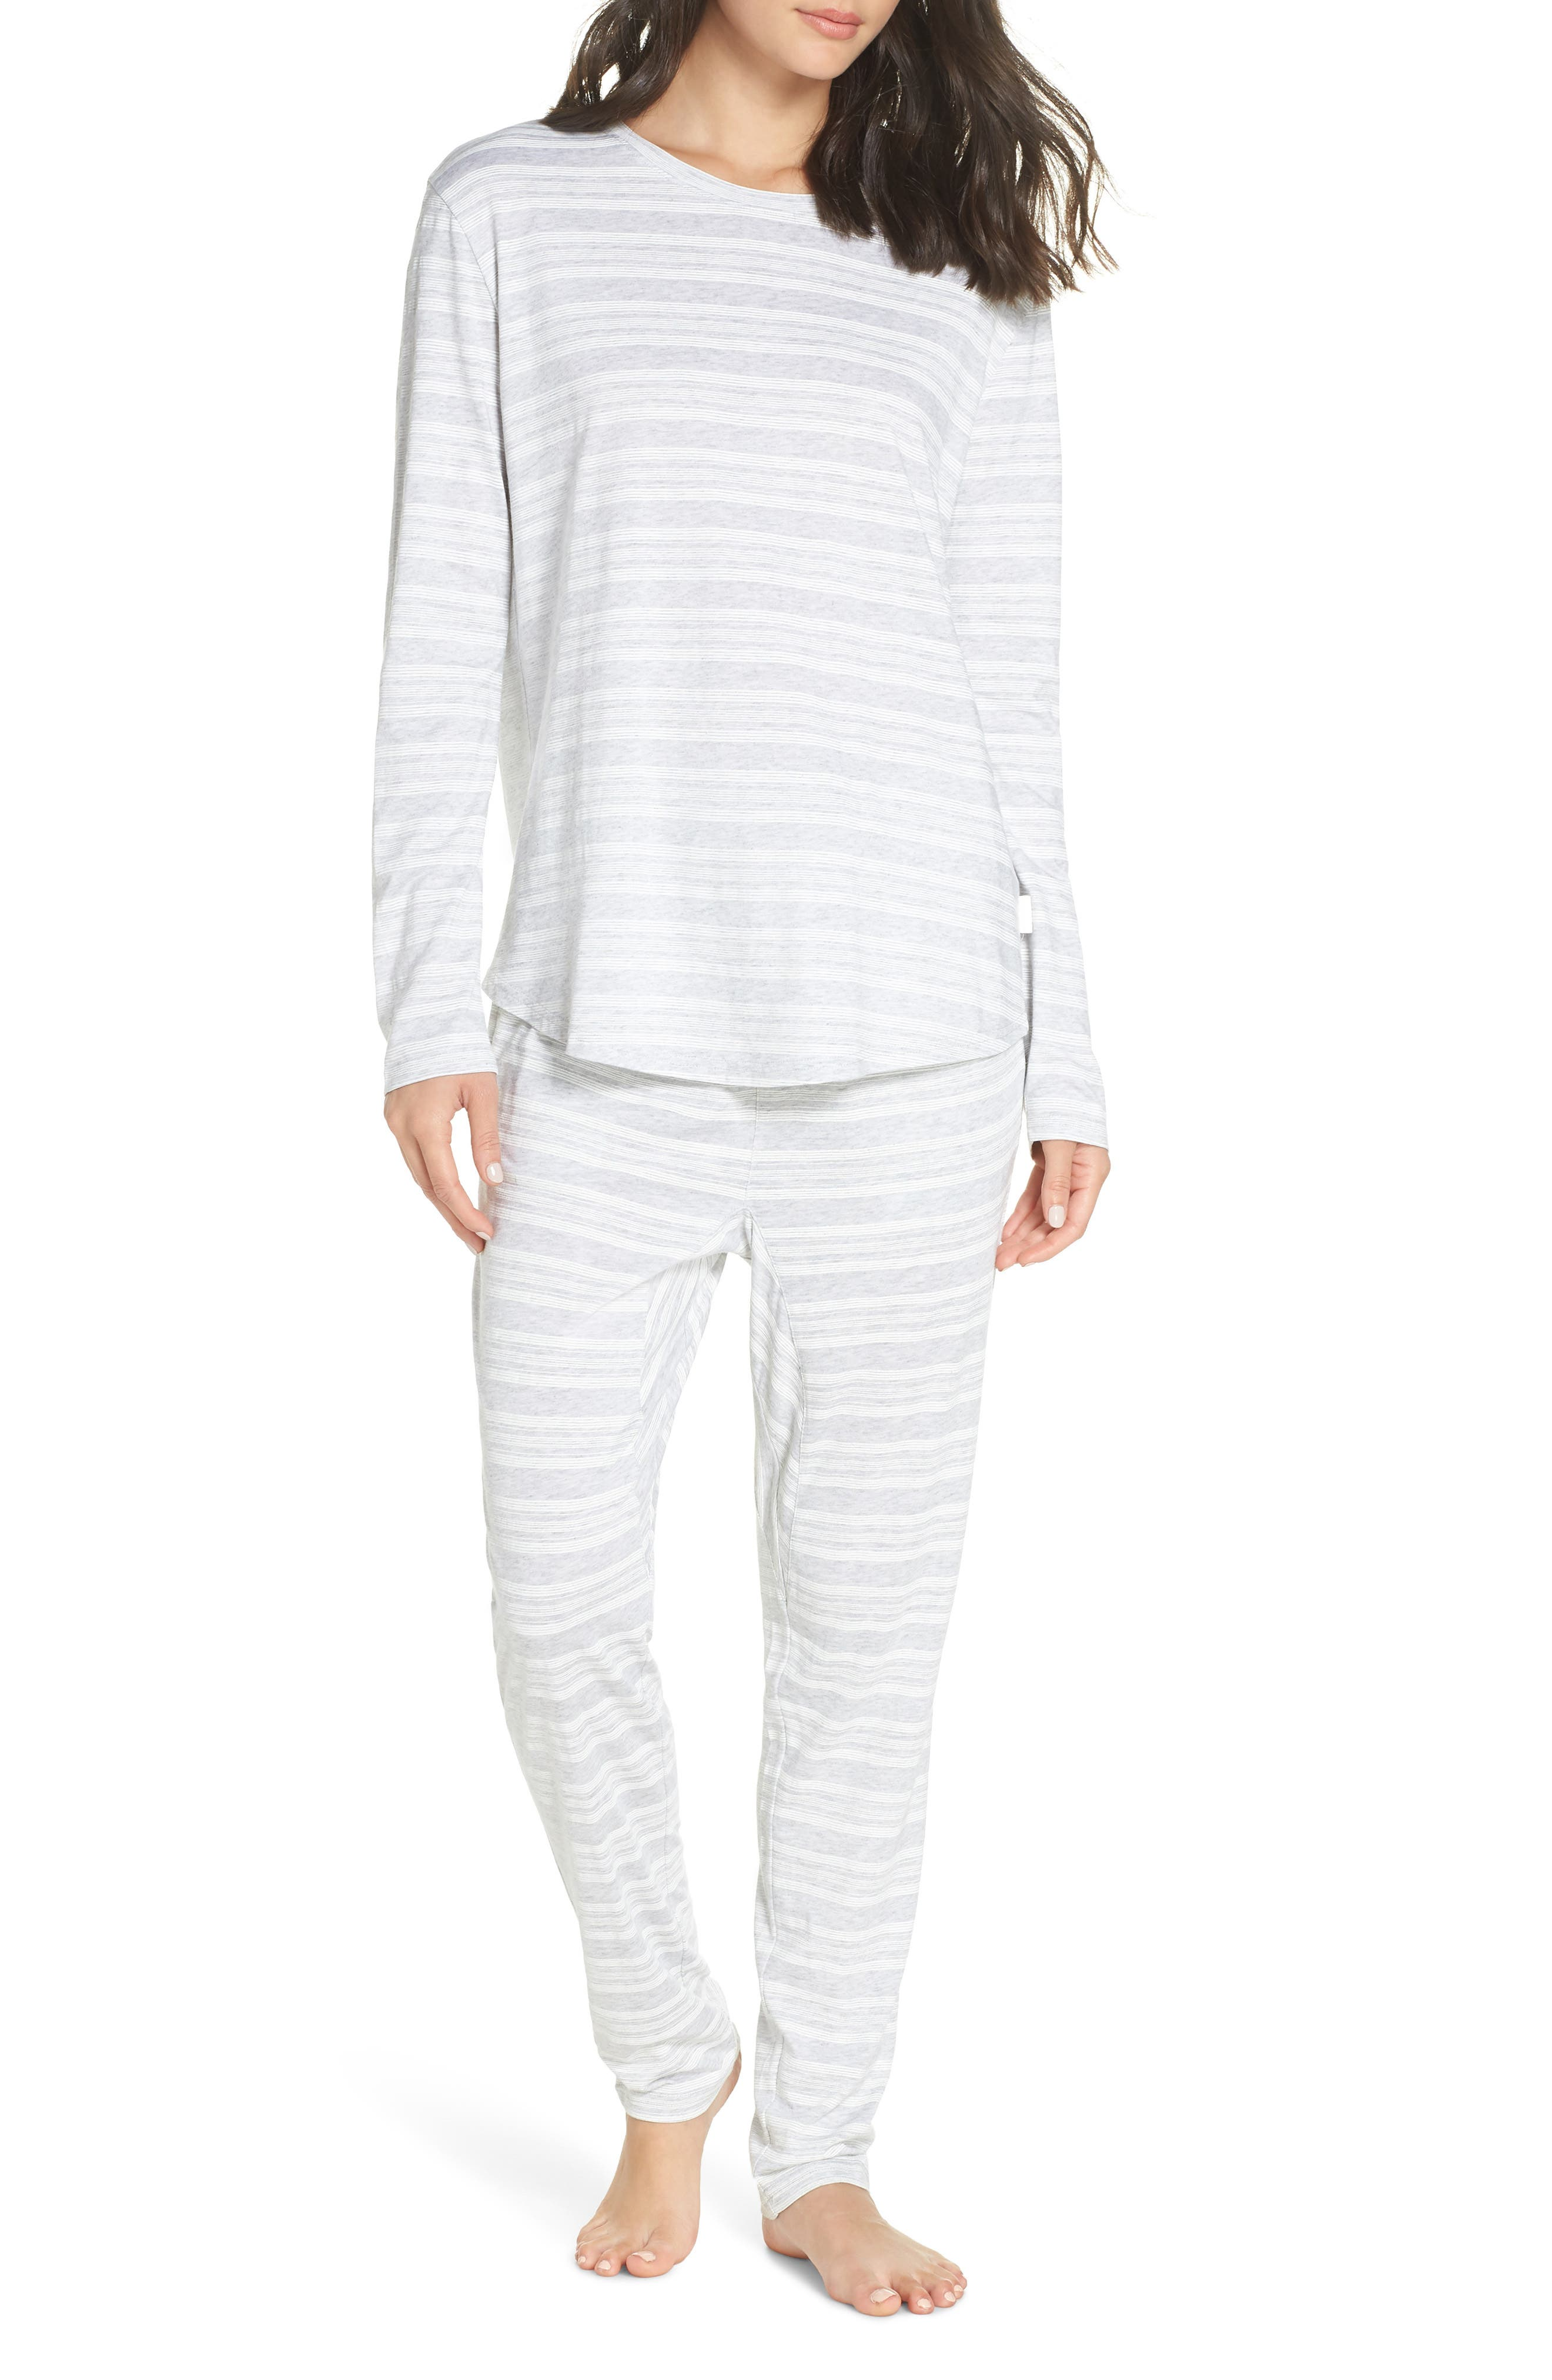 CHALMERS,                             Issy Pajama Top,                             Alternate thumbnail 7, color,                             LOLLY STRIPE WHITE